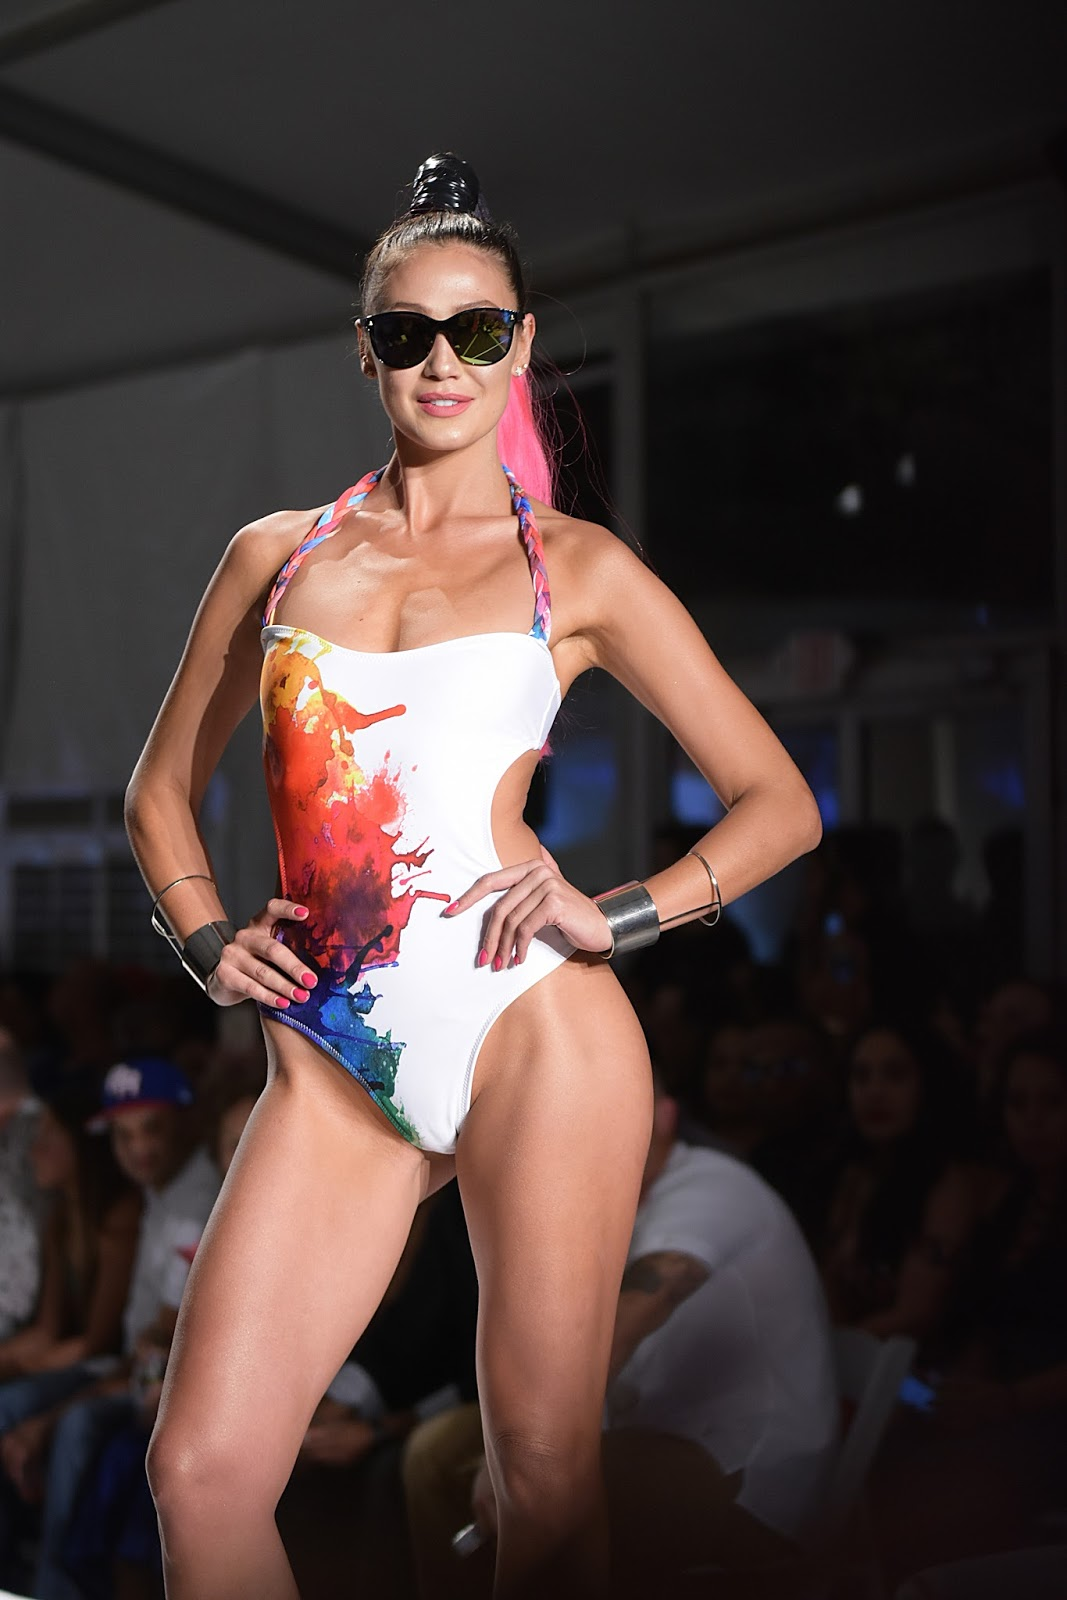 Swim Miami: Day 2, Sports Illustrated, swimwear, miami swimweek 2017, swim week, Gottex, Duskii, Lila Nikole, Frankies